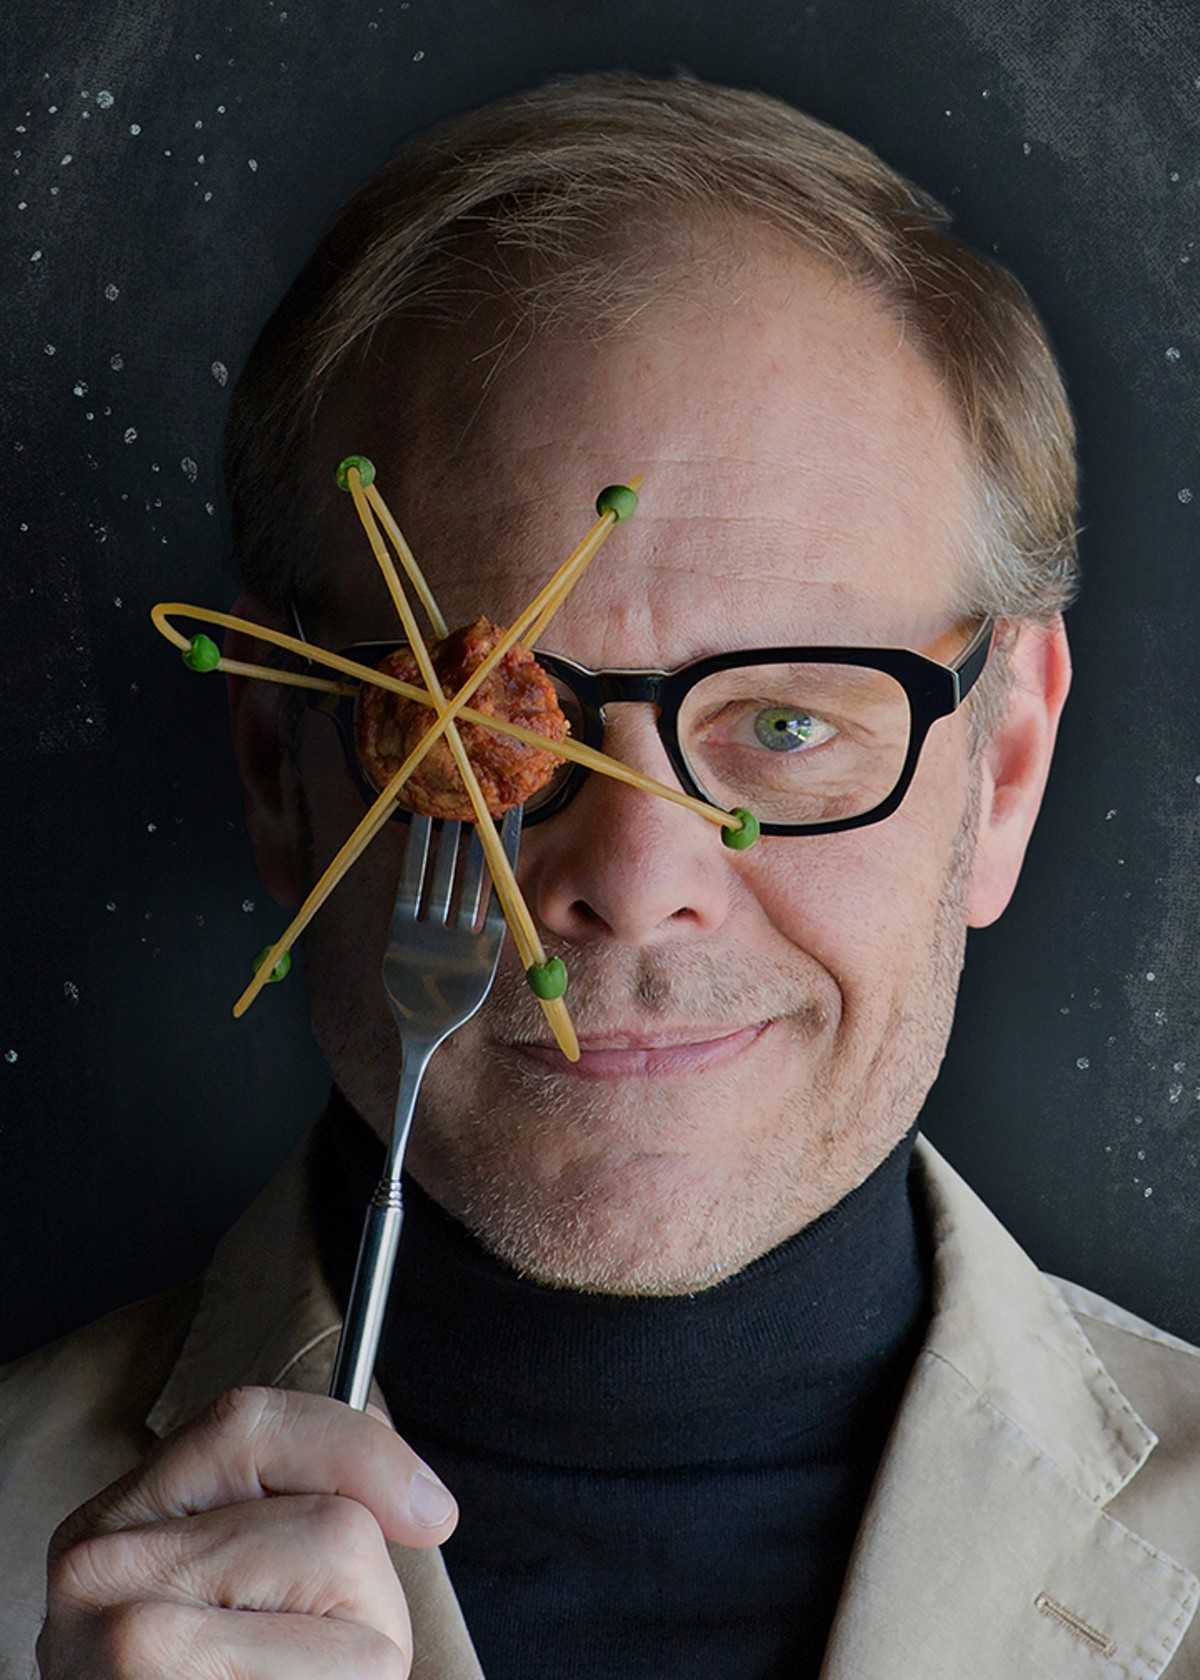 gal_alton-brown-live-eat-your-science-headshot.jpg